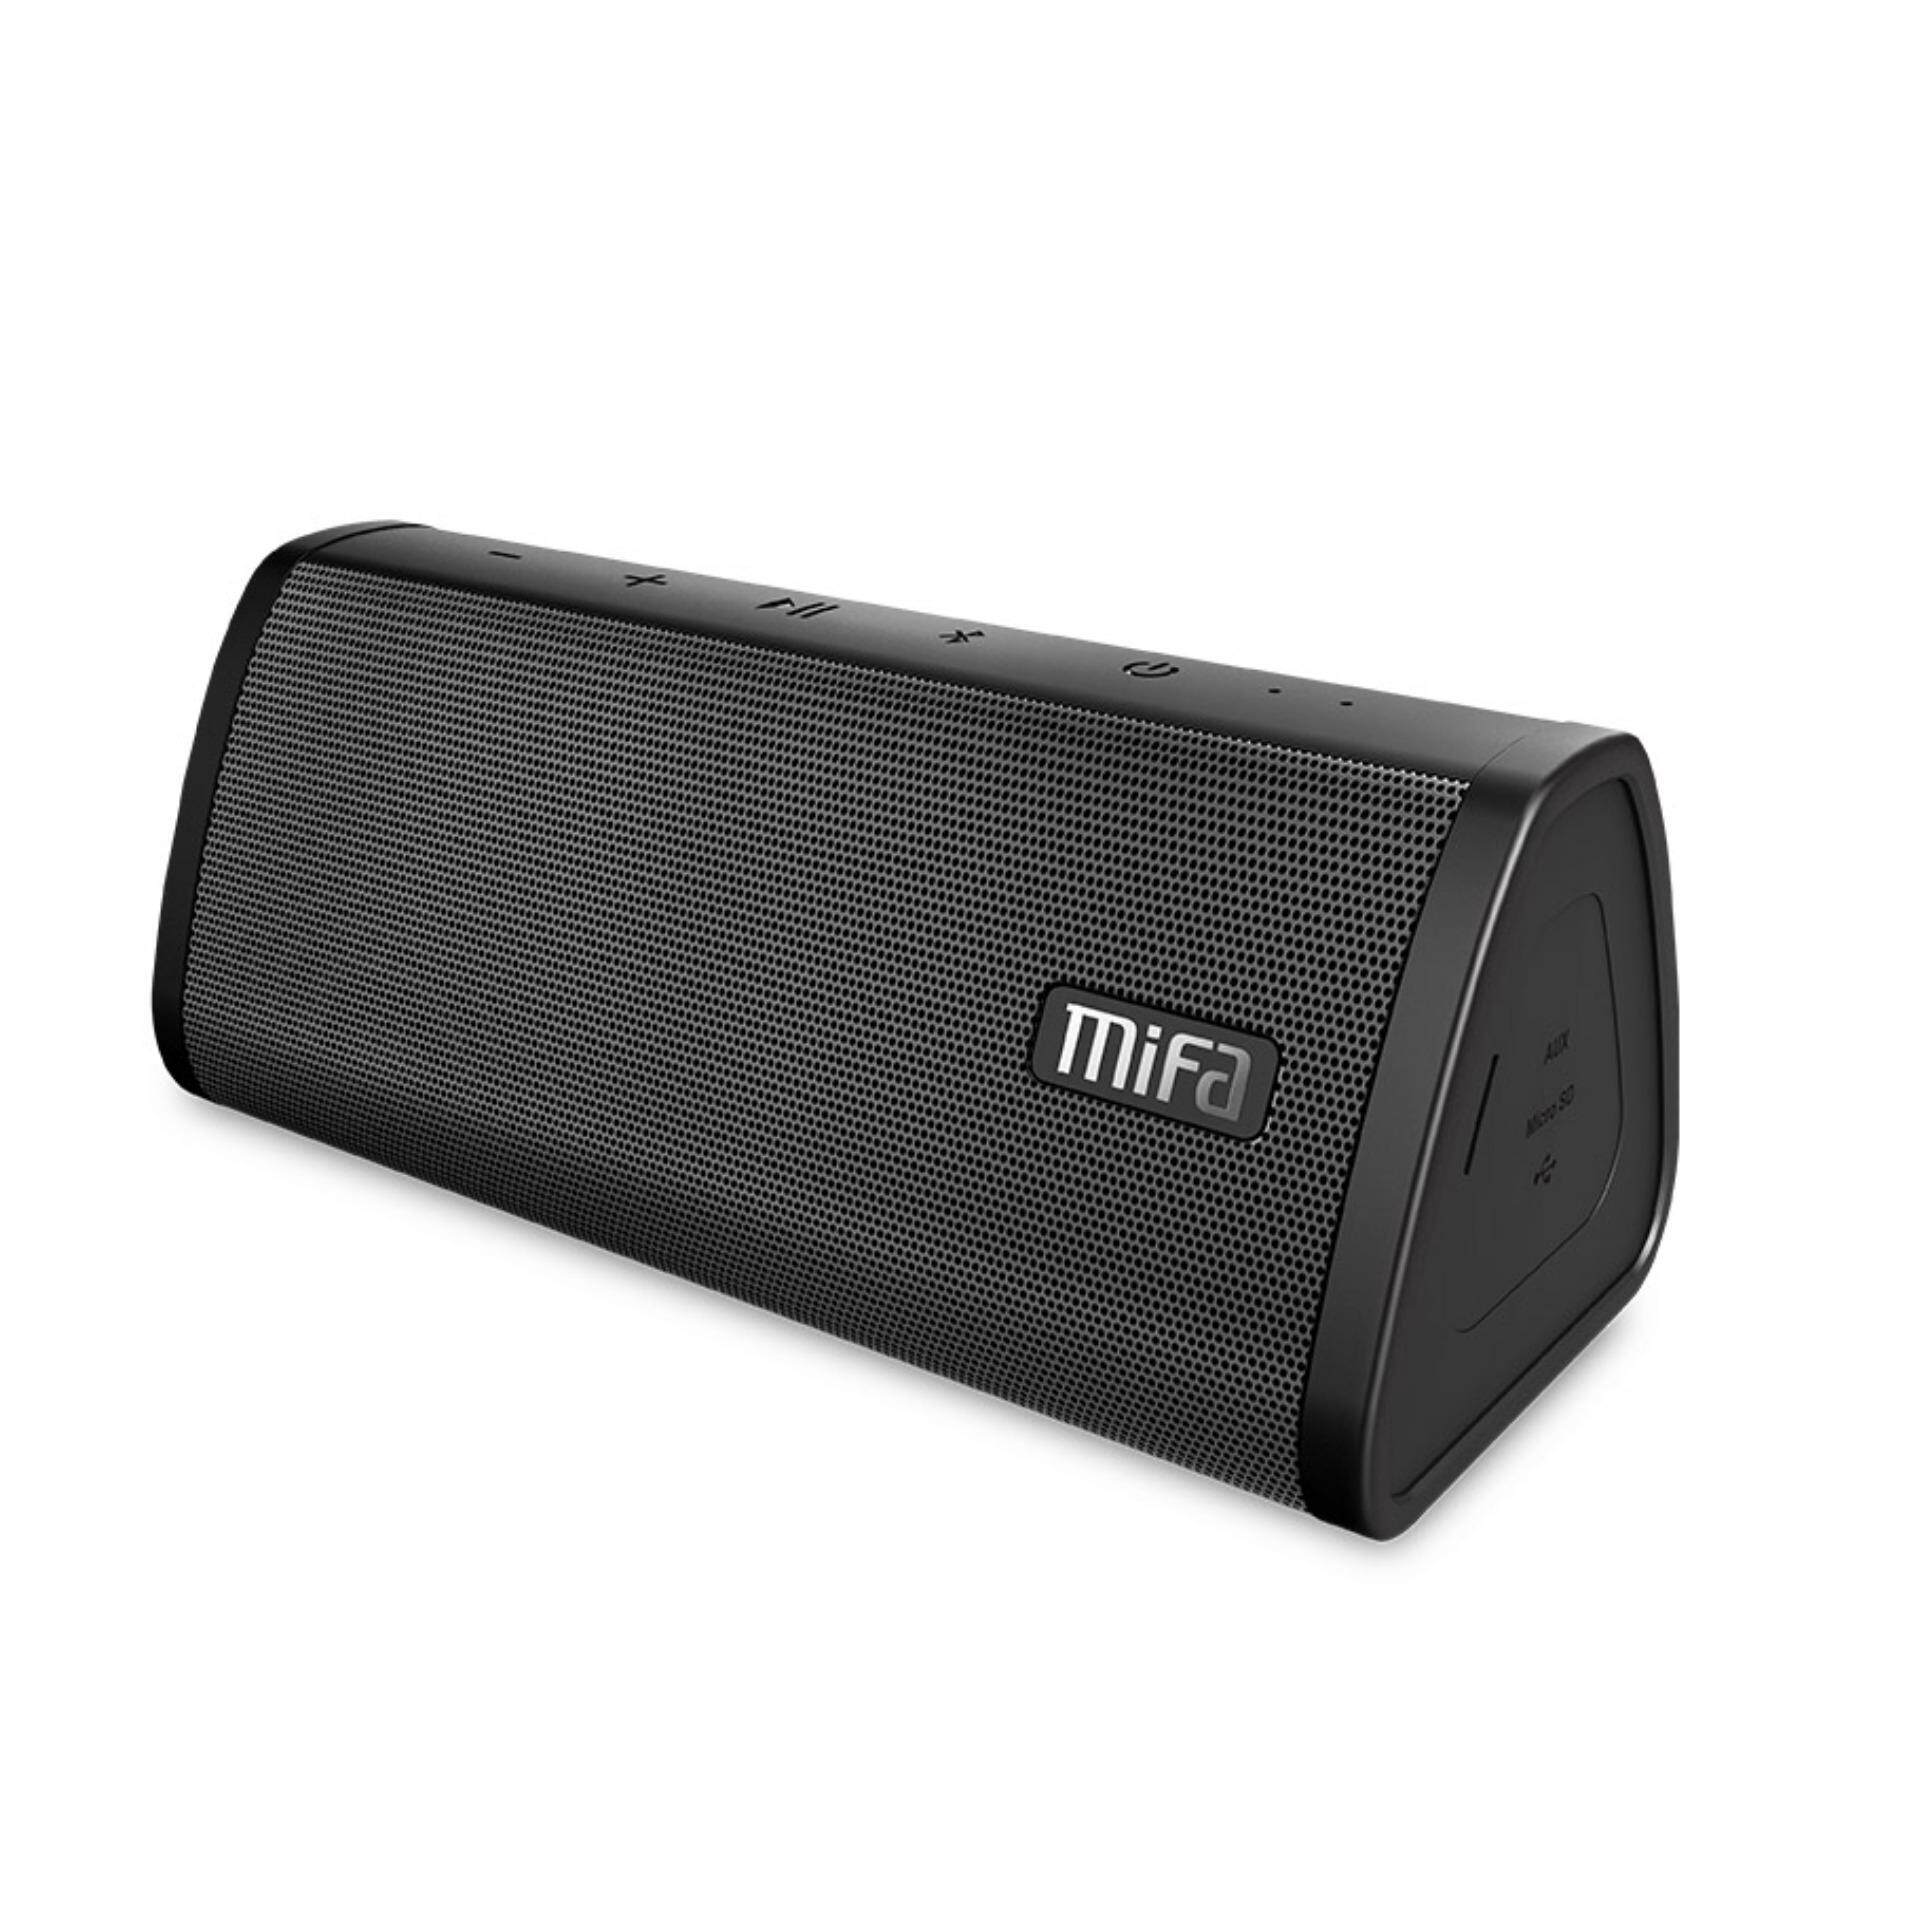 [24 Month Warranty]mifa A10 Wireless Bluetooth Speaker, 16-Hour Playtime, Ip45 Dustproof & Water-Resistant, 10w Rated Power Hd Stereo Sound & Enhanced Bass, Support Tws, Built-In Mic, Micro Sd Card Slot(black) By Mifa Store.